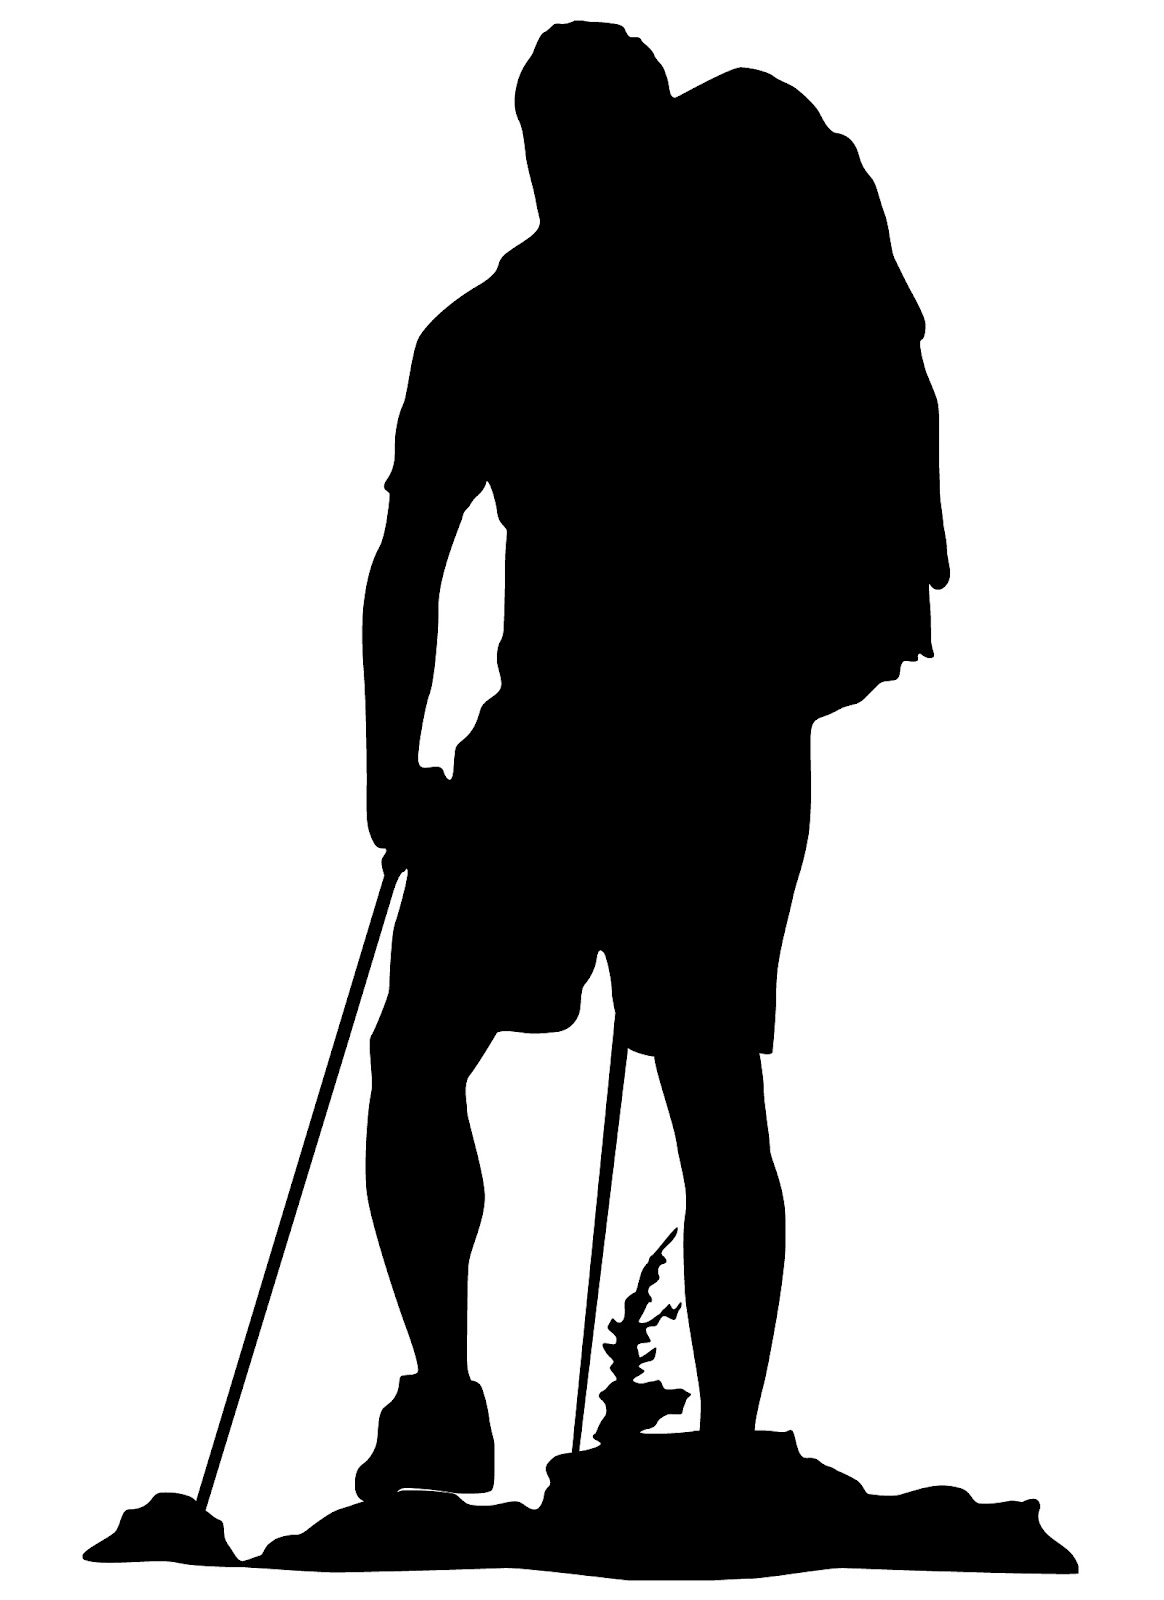 1164x1600 Png Hiker Free Transparent Hiker.png Images. Pluspng